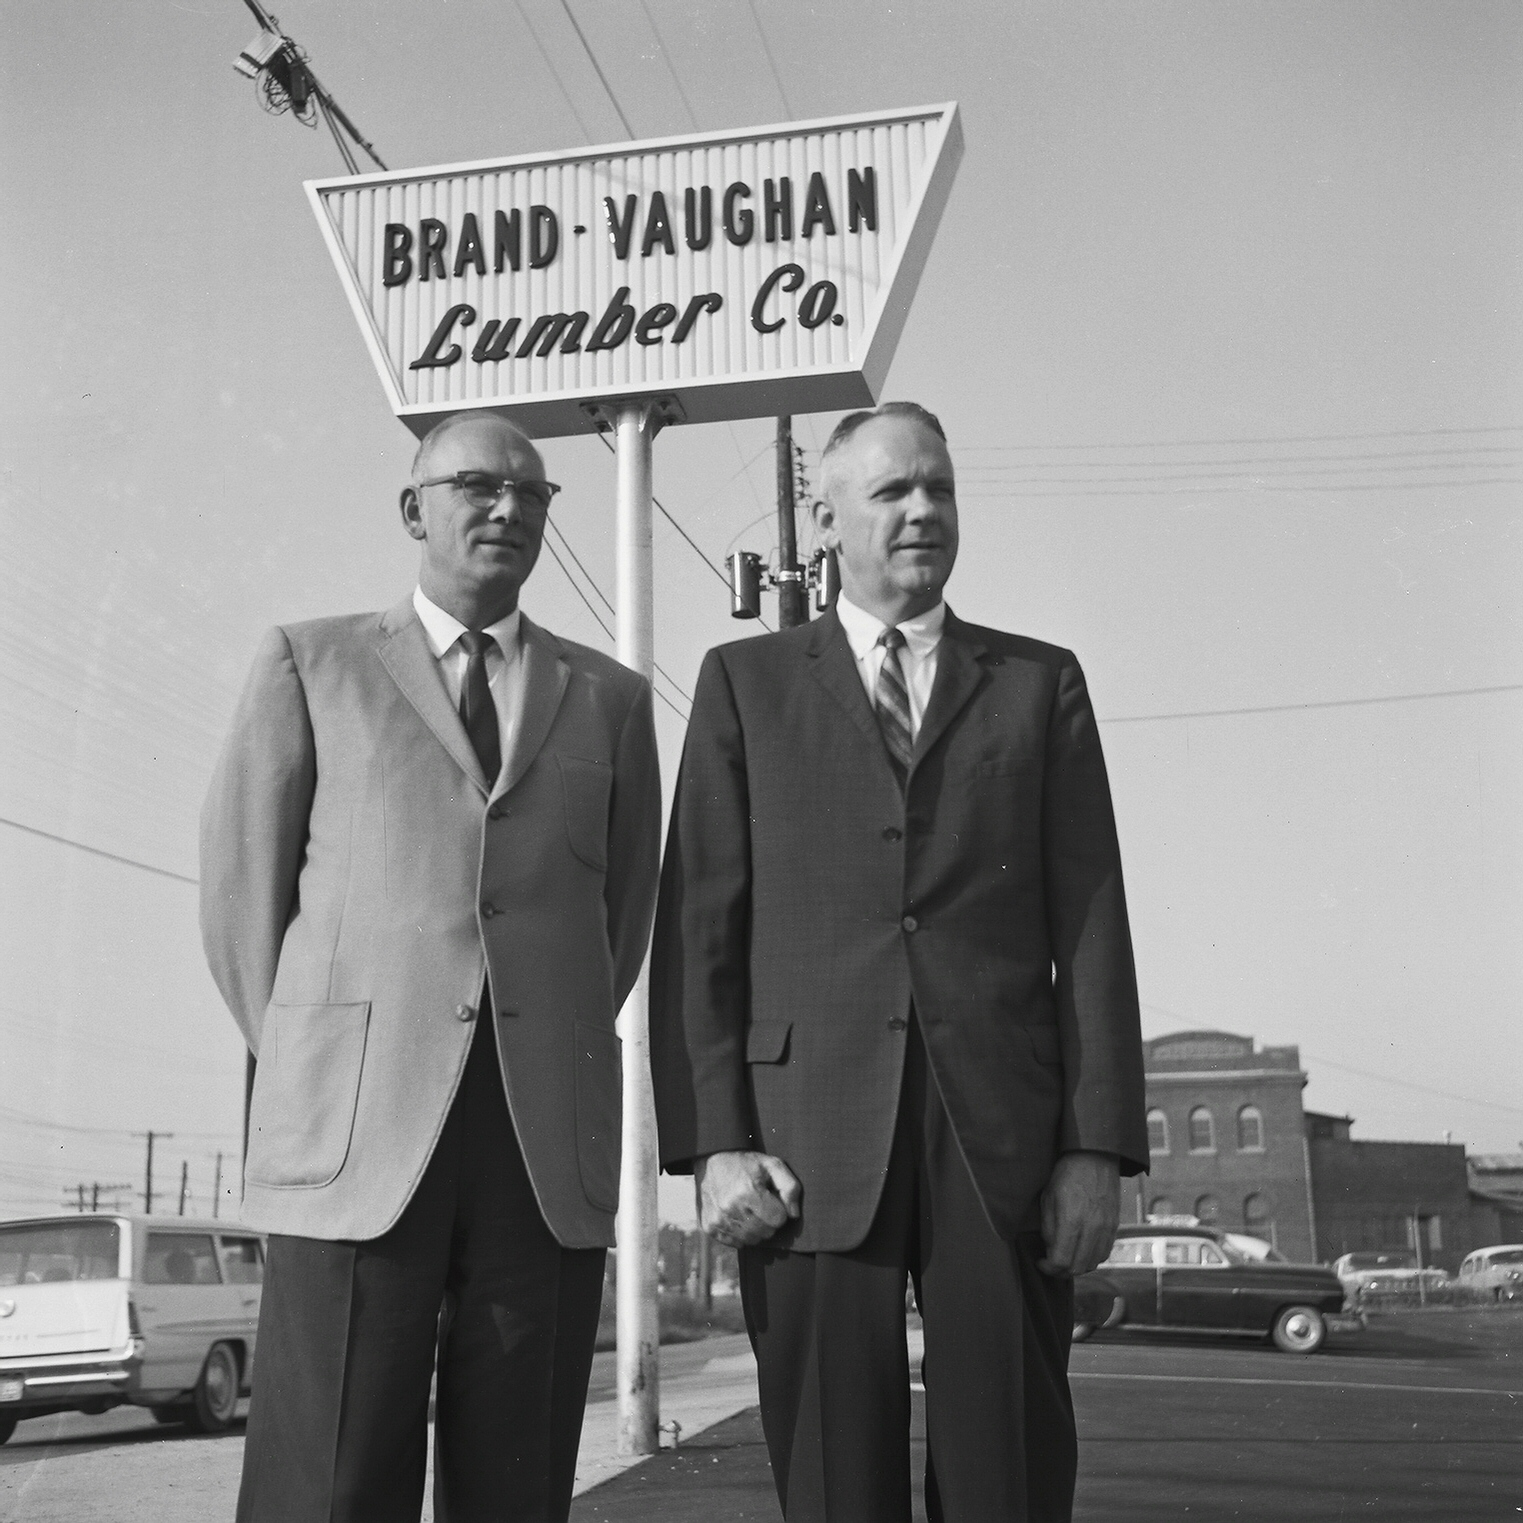 Brand and Vaughan